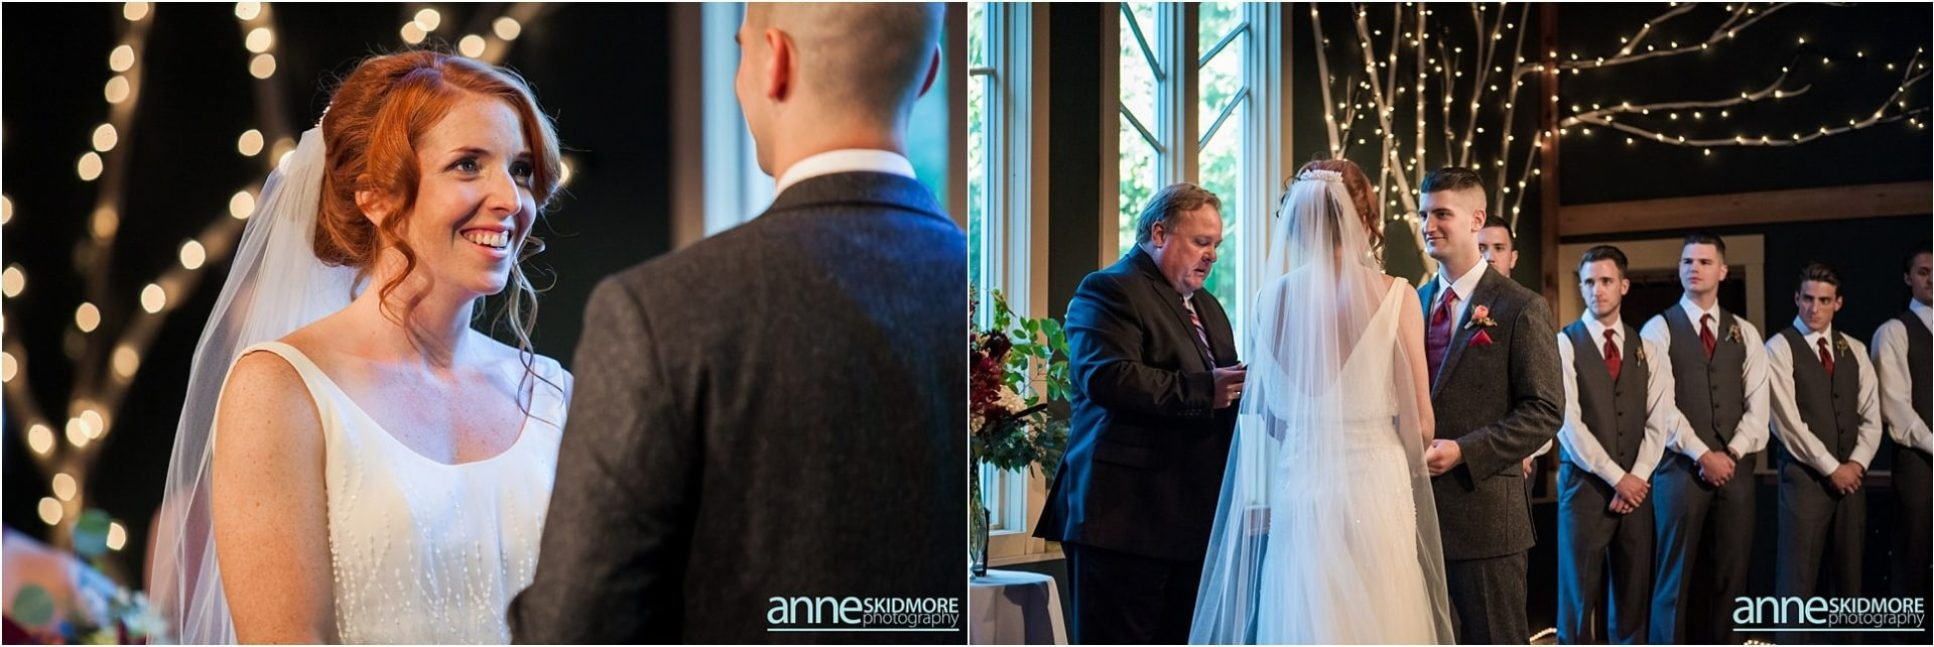 Stone_Mountain_Arts_Center_Wedding__023